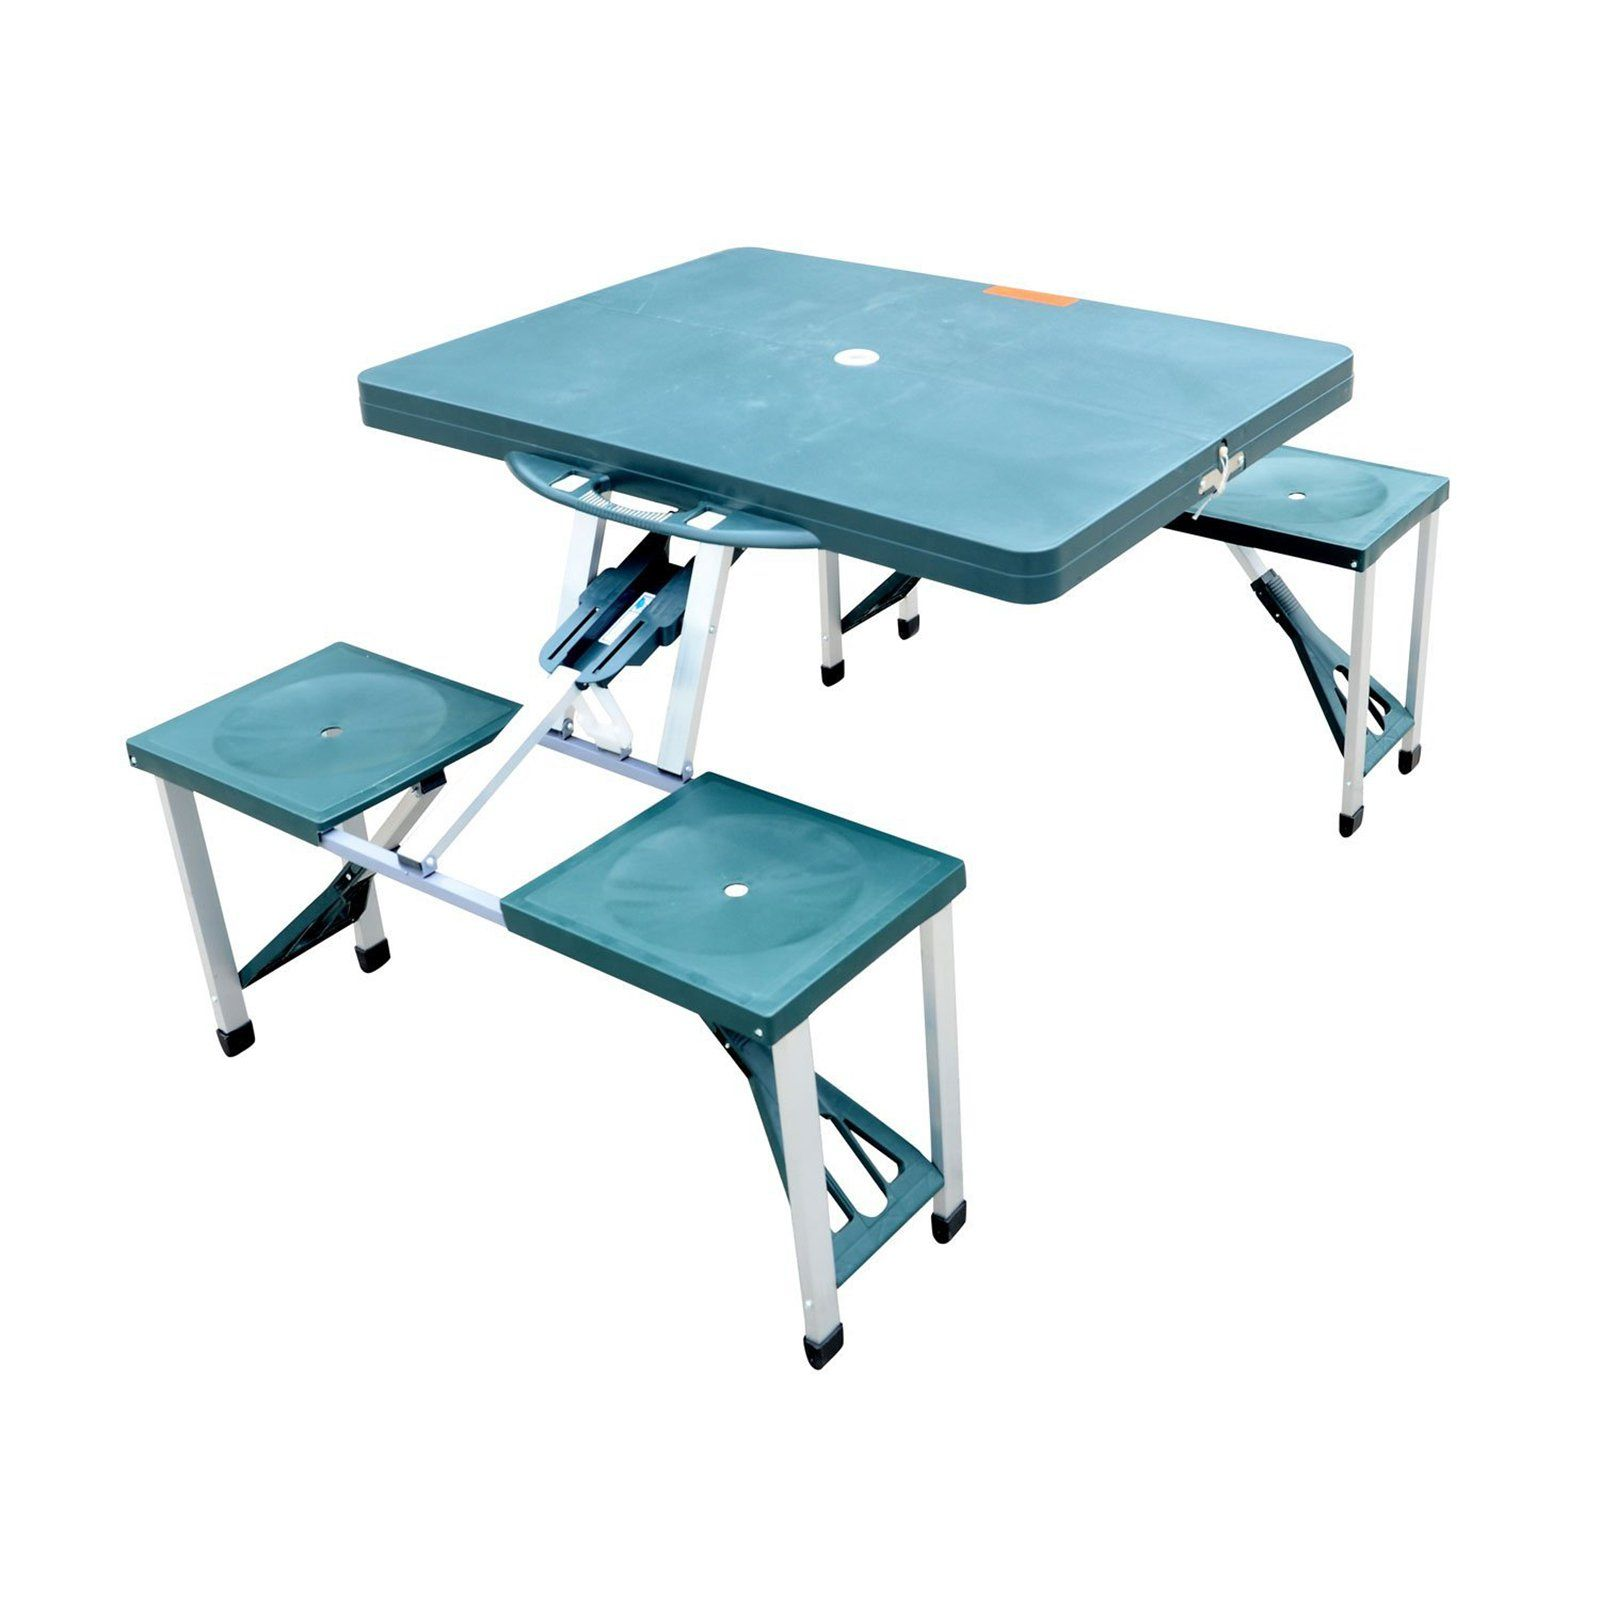 Miraculous Outsunny Plastic Portable Outdoor Picnic Table Products In Onthecornerstone Fun Painted Chair Ideas Images Onthecornerstoneorg